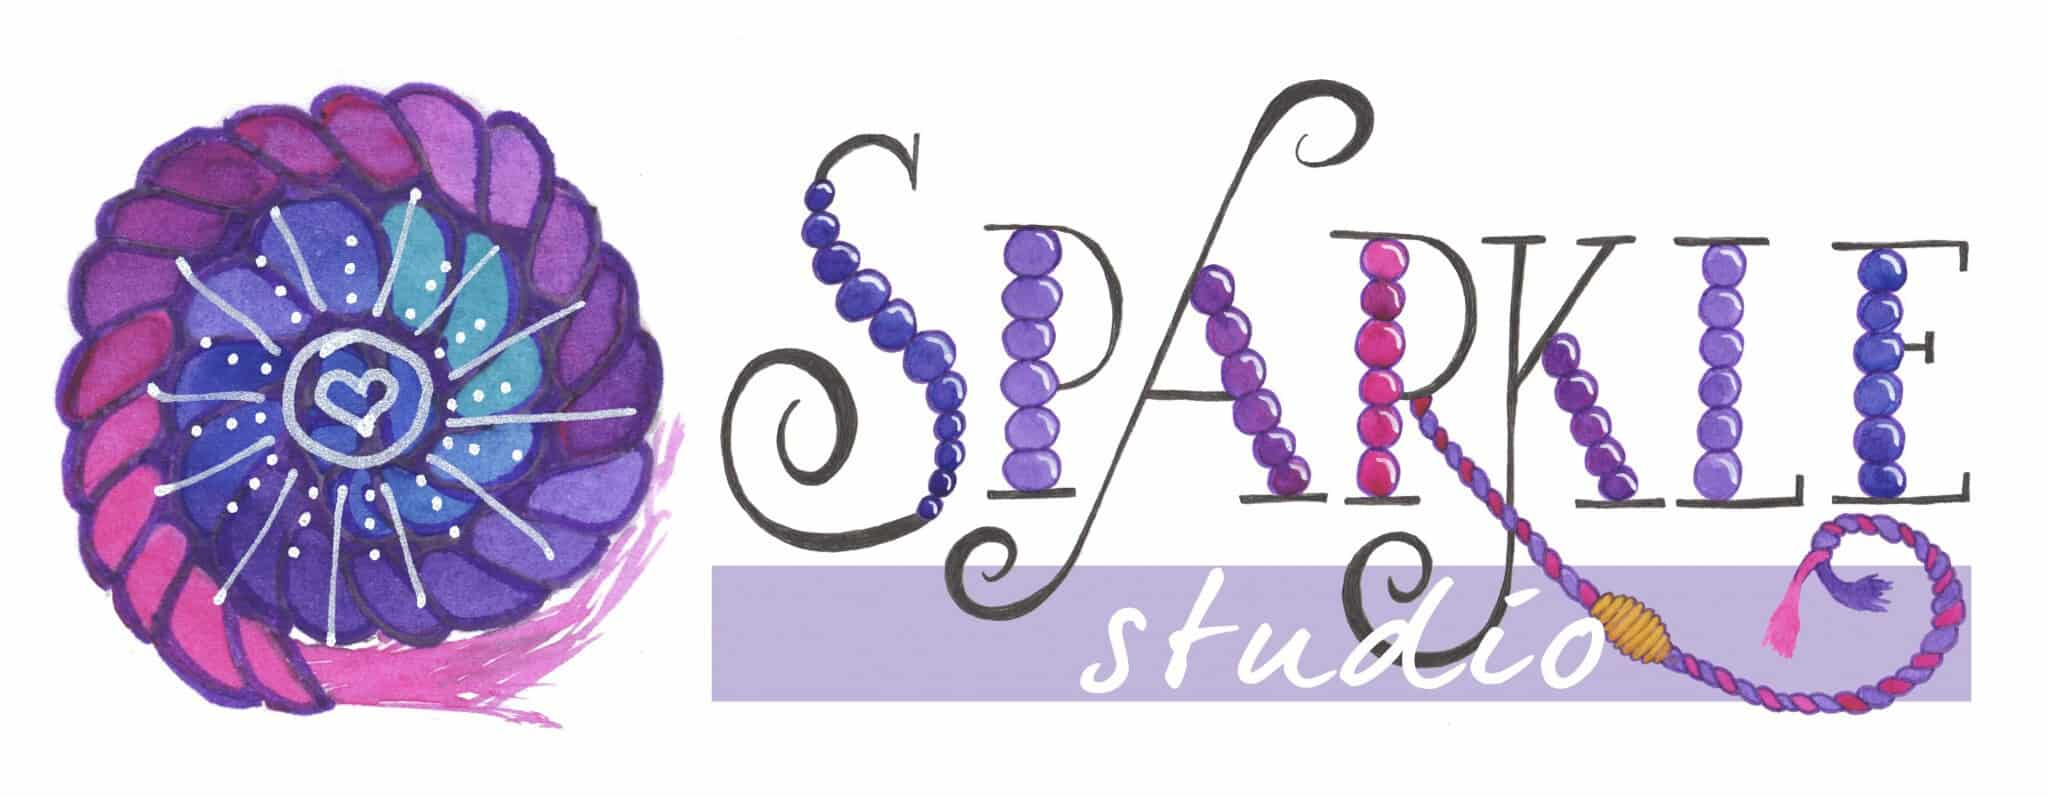 Sparkle Studio | Roo Kline and Amy Shelton